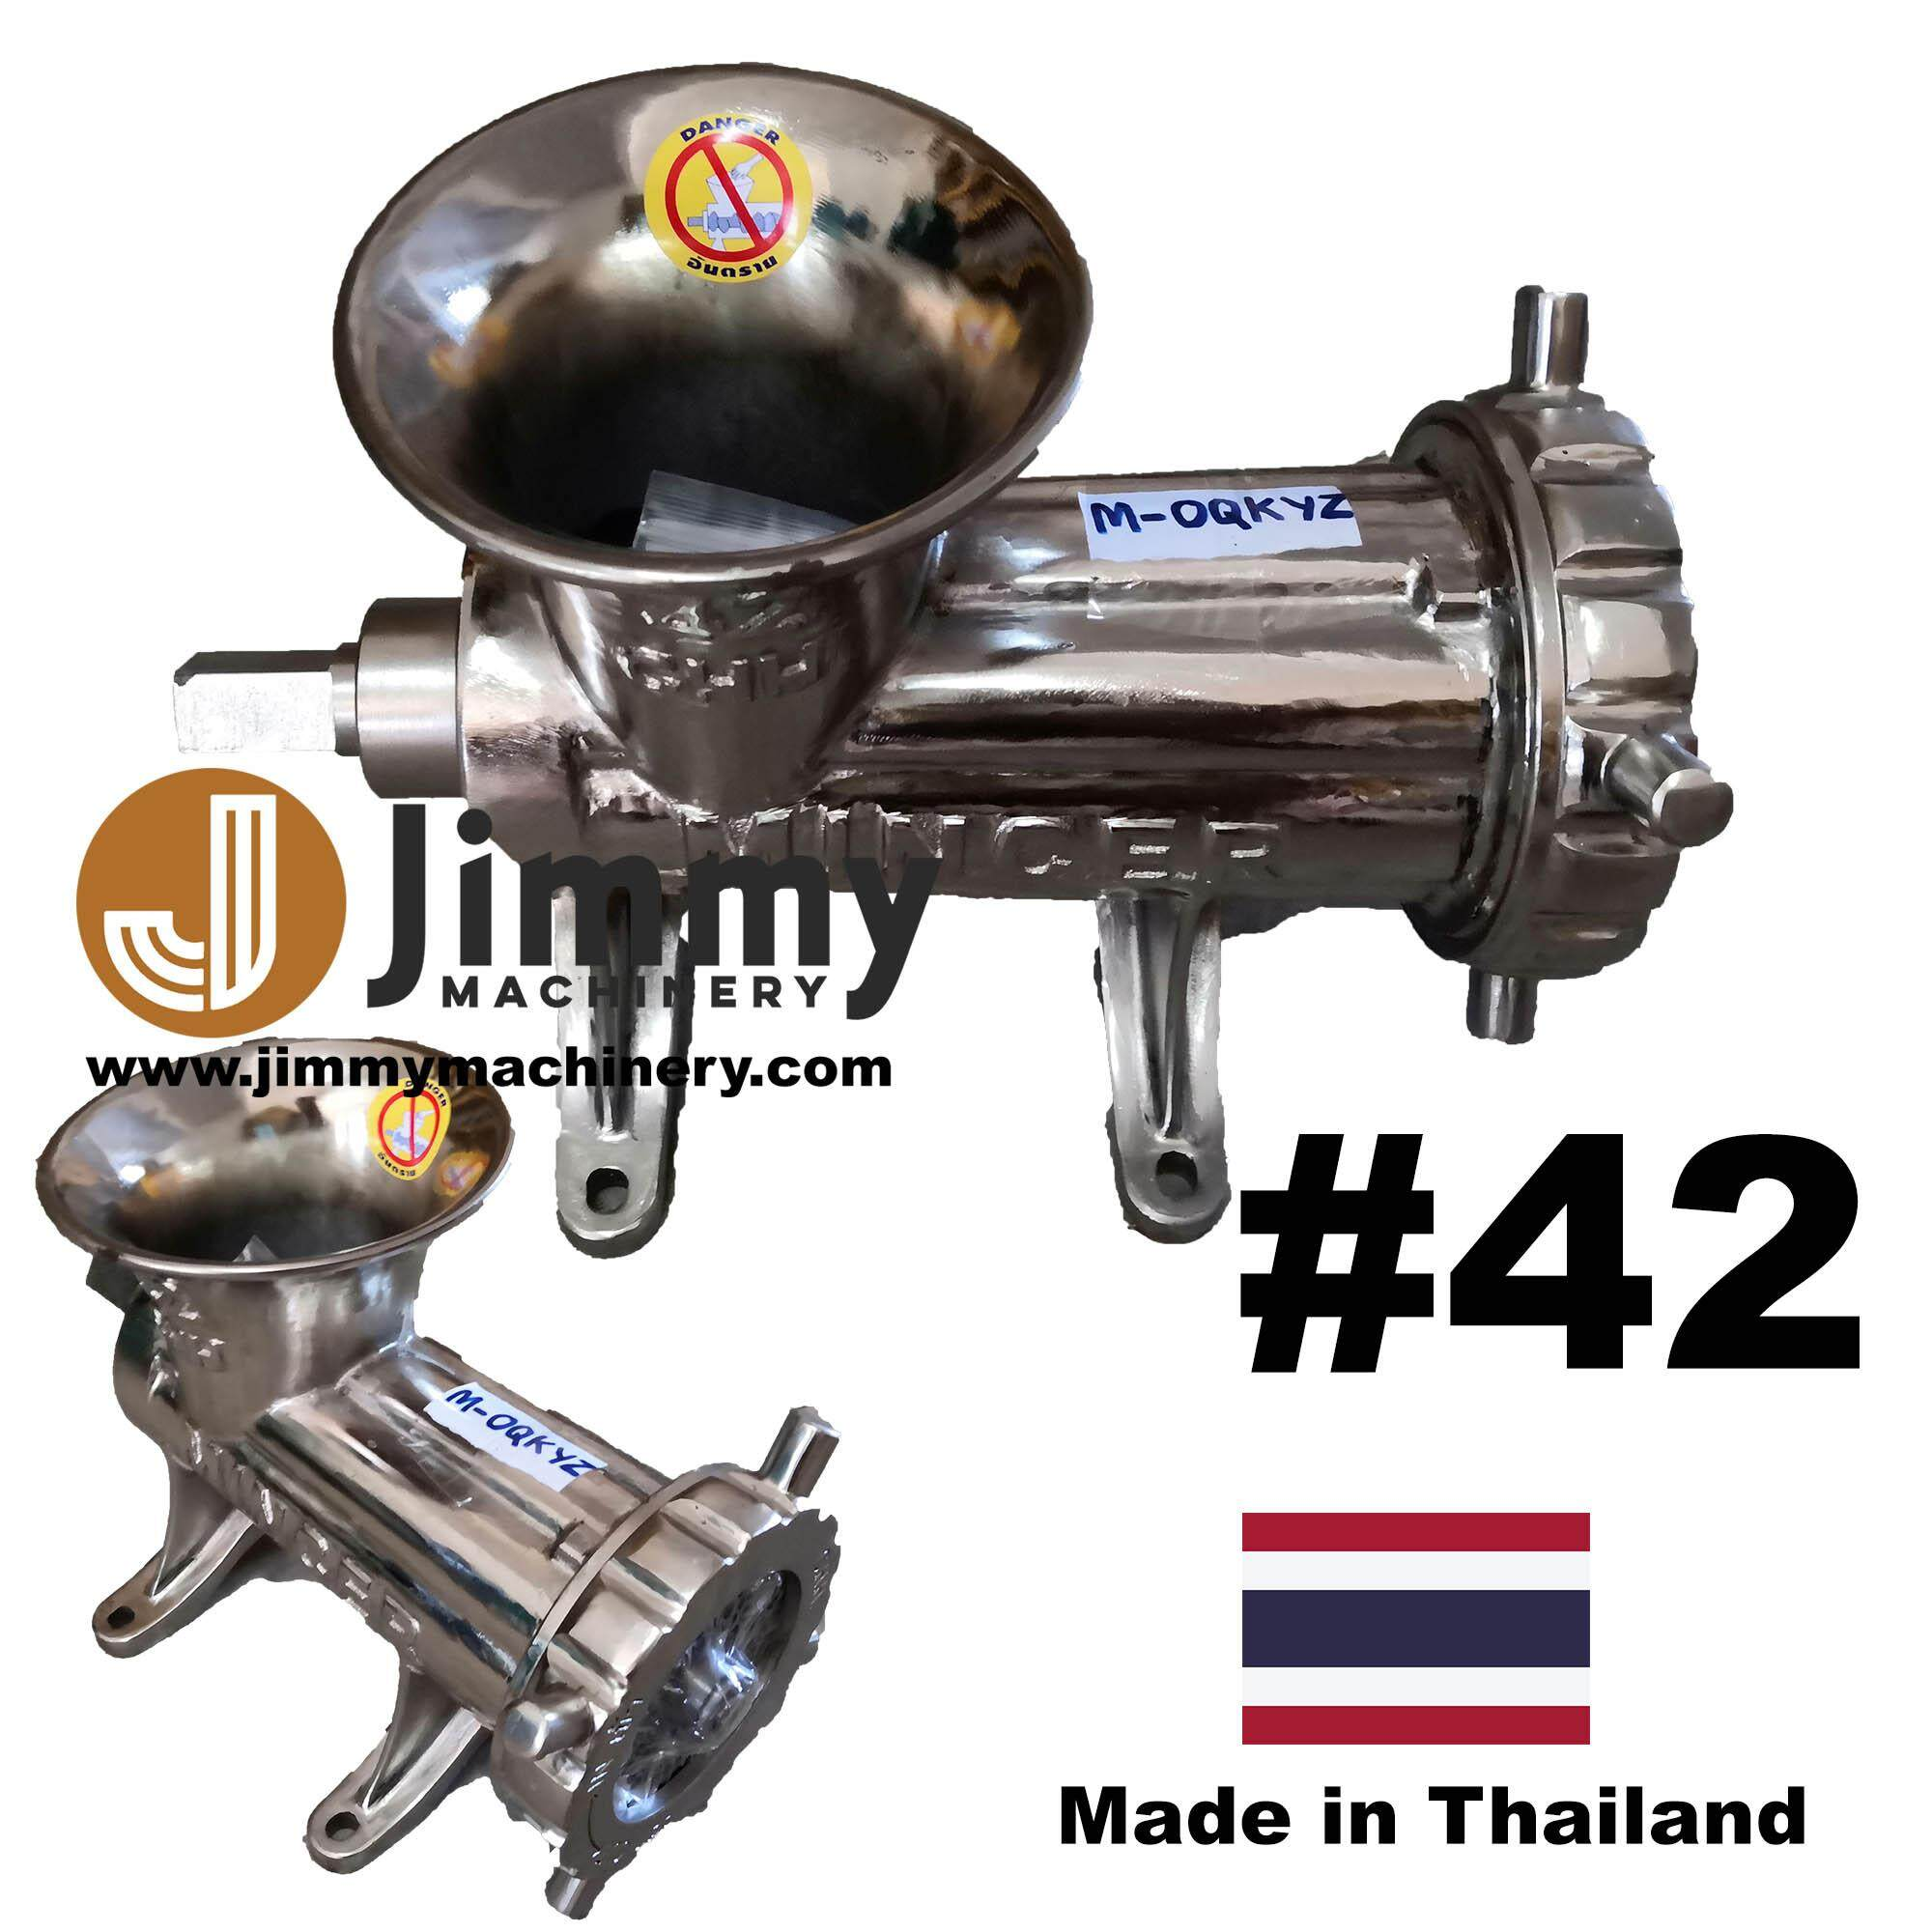 [Made in Thailand] Heavy Duty #42 42 Meat Mincer Grinder Stainless Steel Shaft Chrome Plated